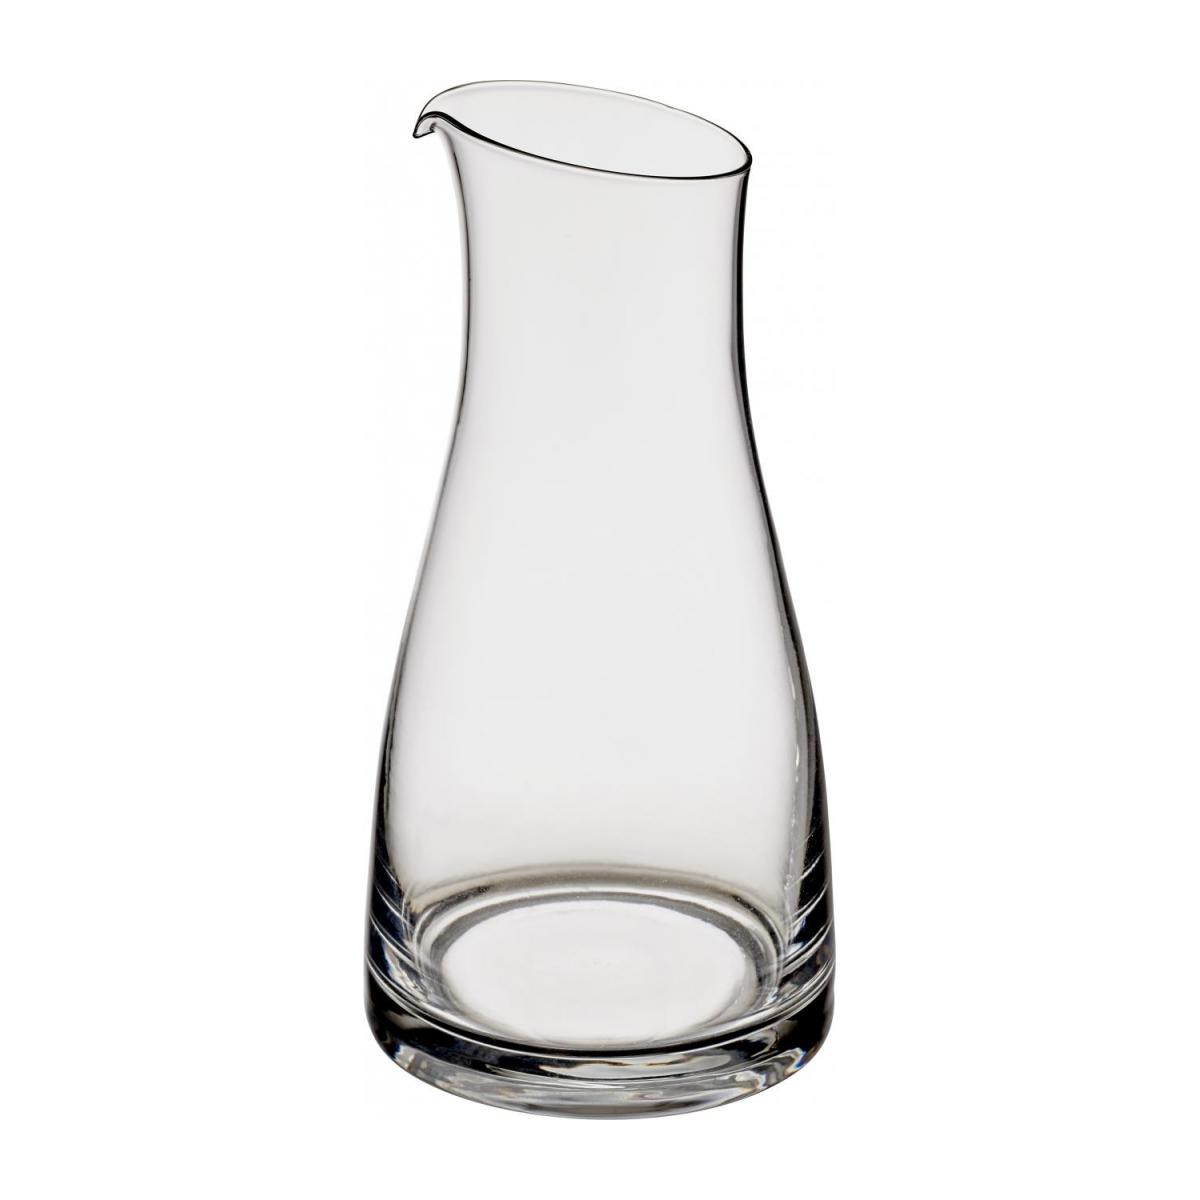 Glass Carafe 0.5L Clear n°2